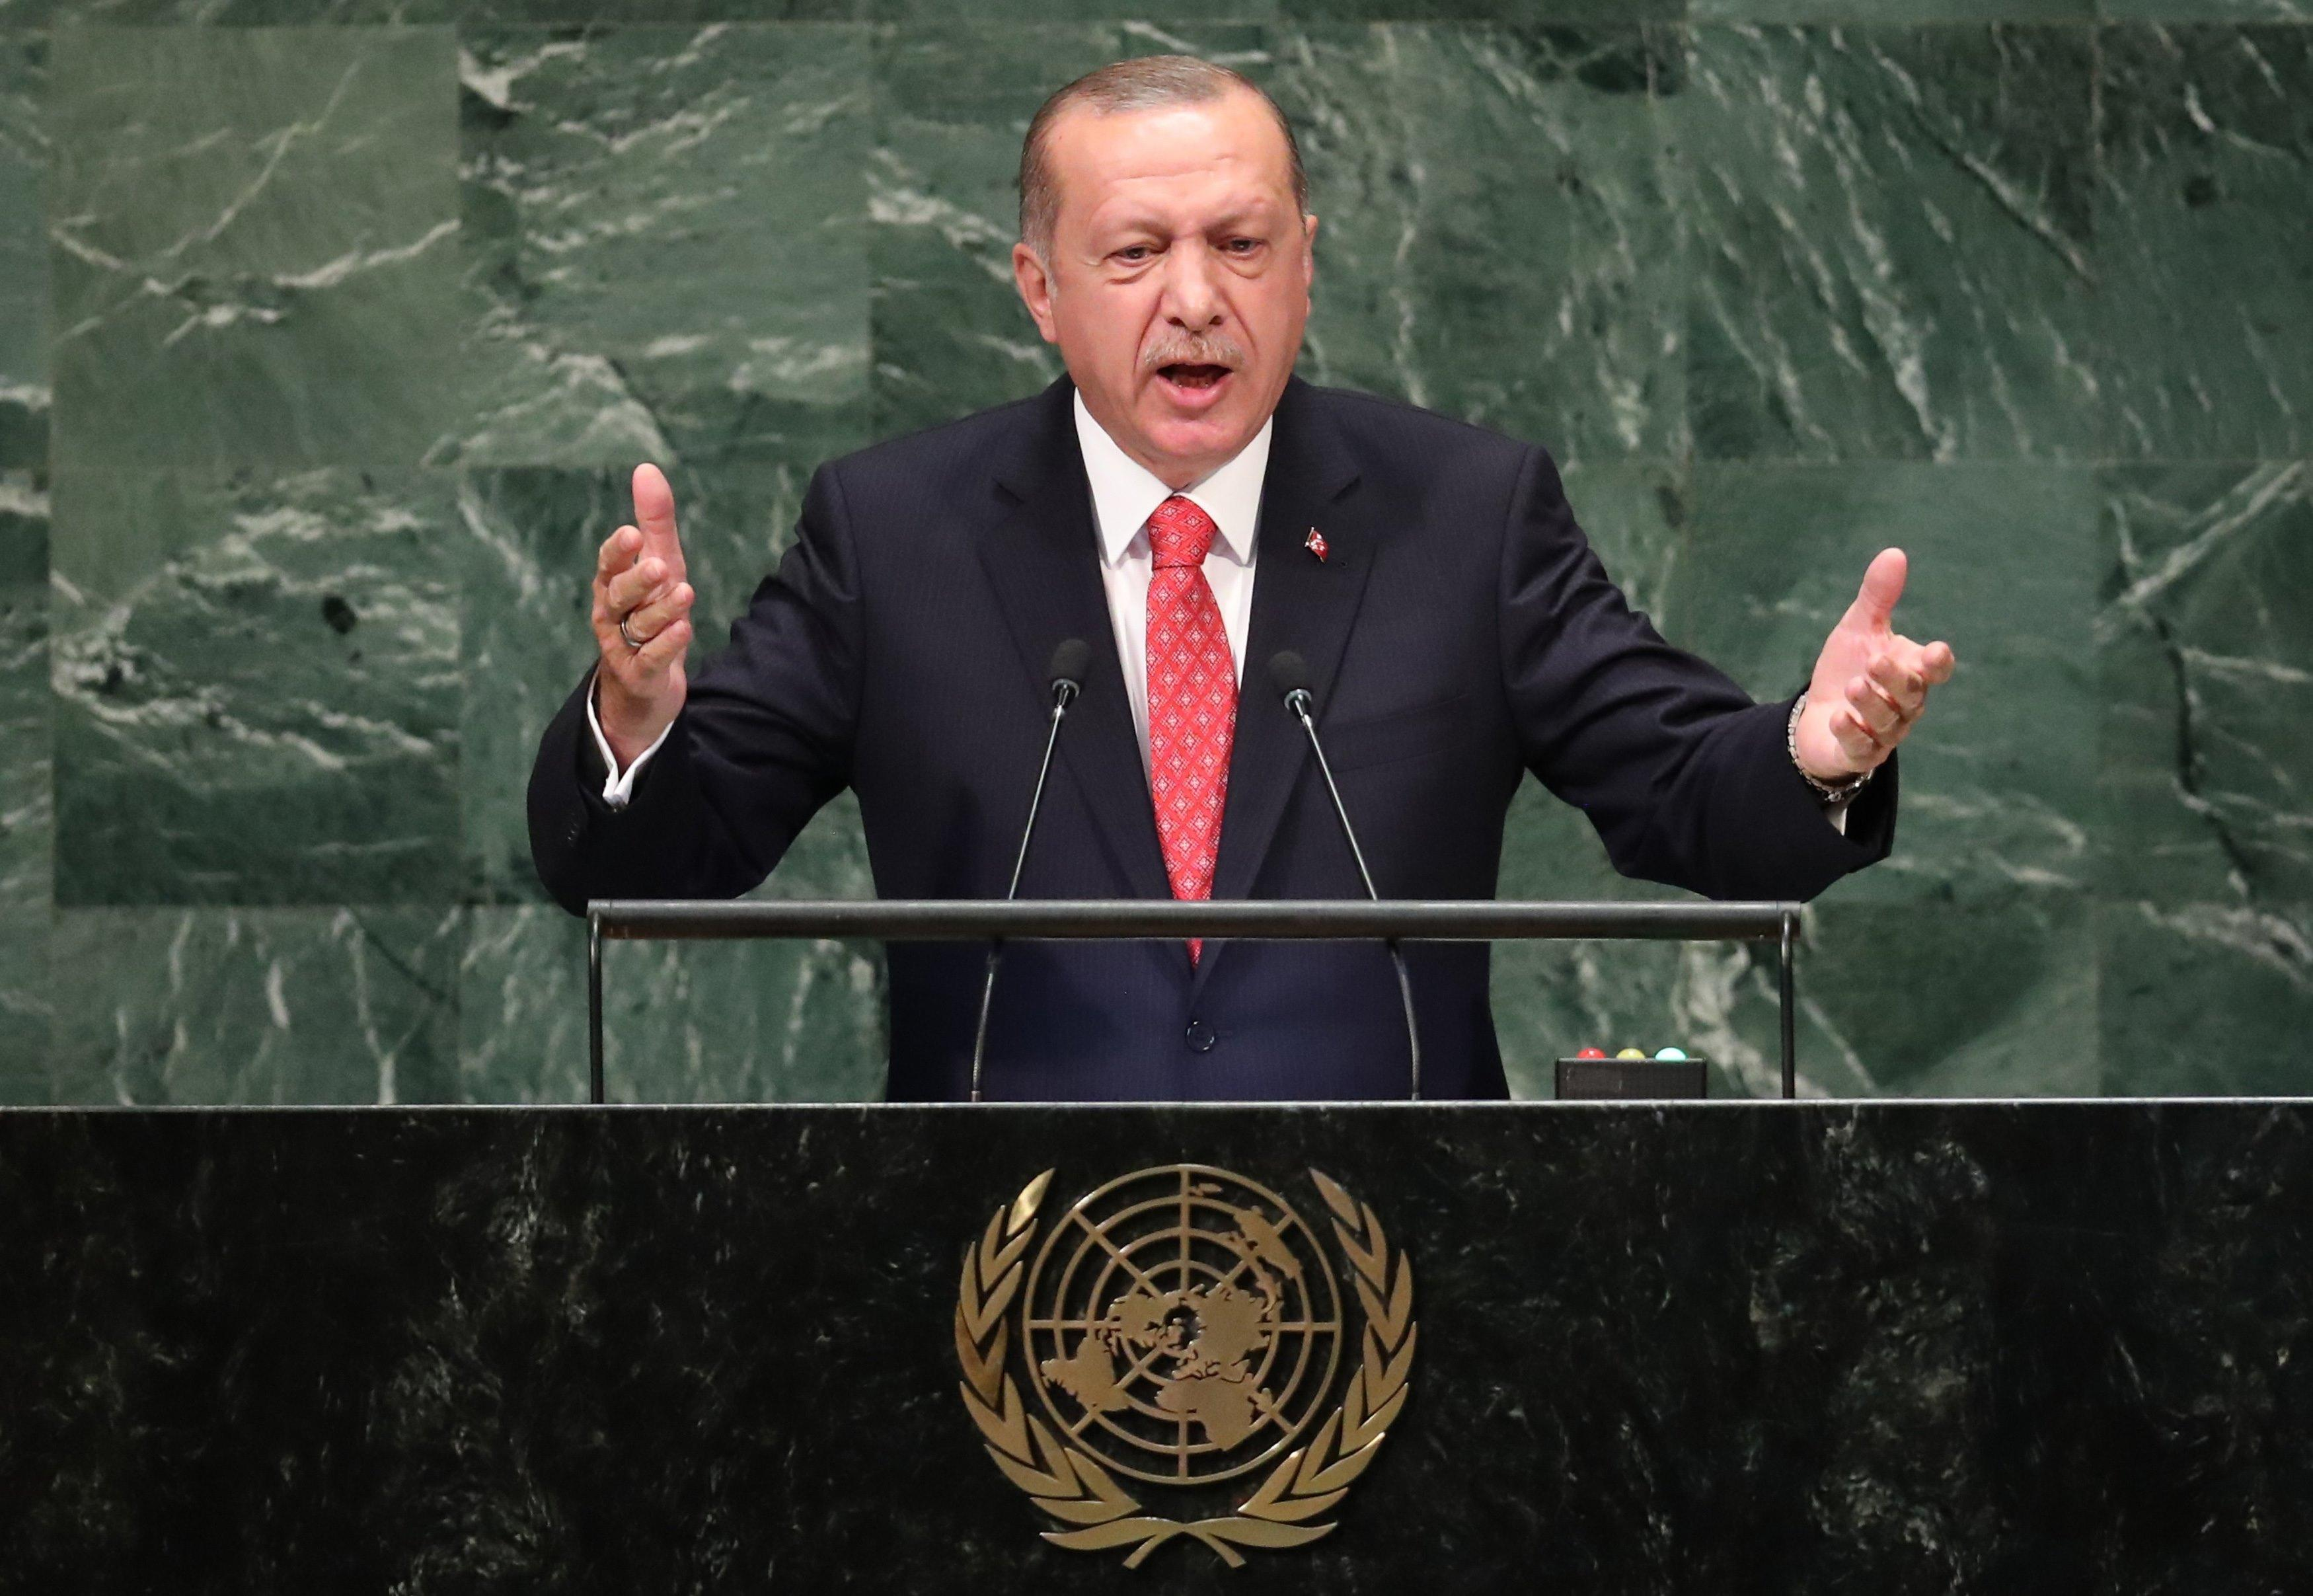 Turkey's President Recep Tayyip Erdogan addresses the 73rd session of the United Nations General Assembly at U.N. headquarters in New York, U.S., September 25, 2018. Carlo Allegri